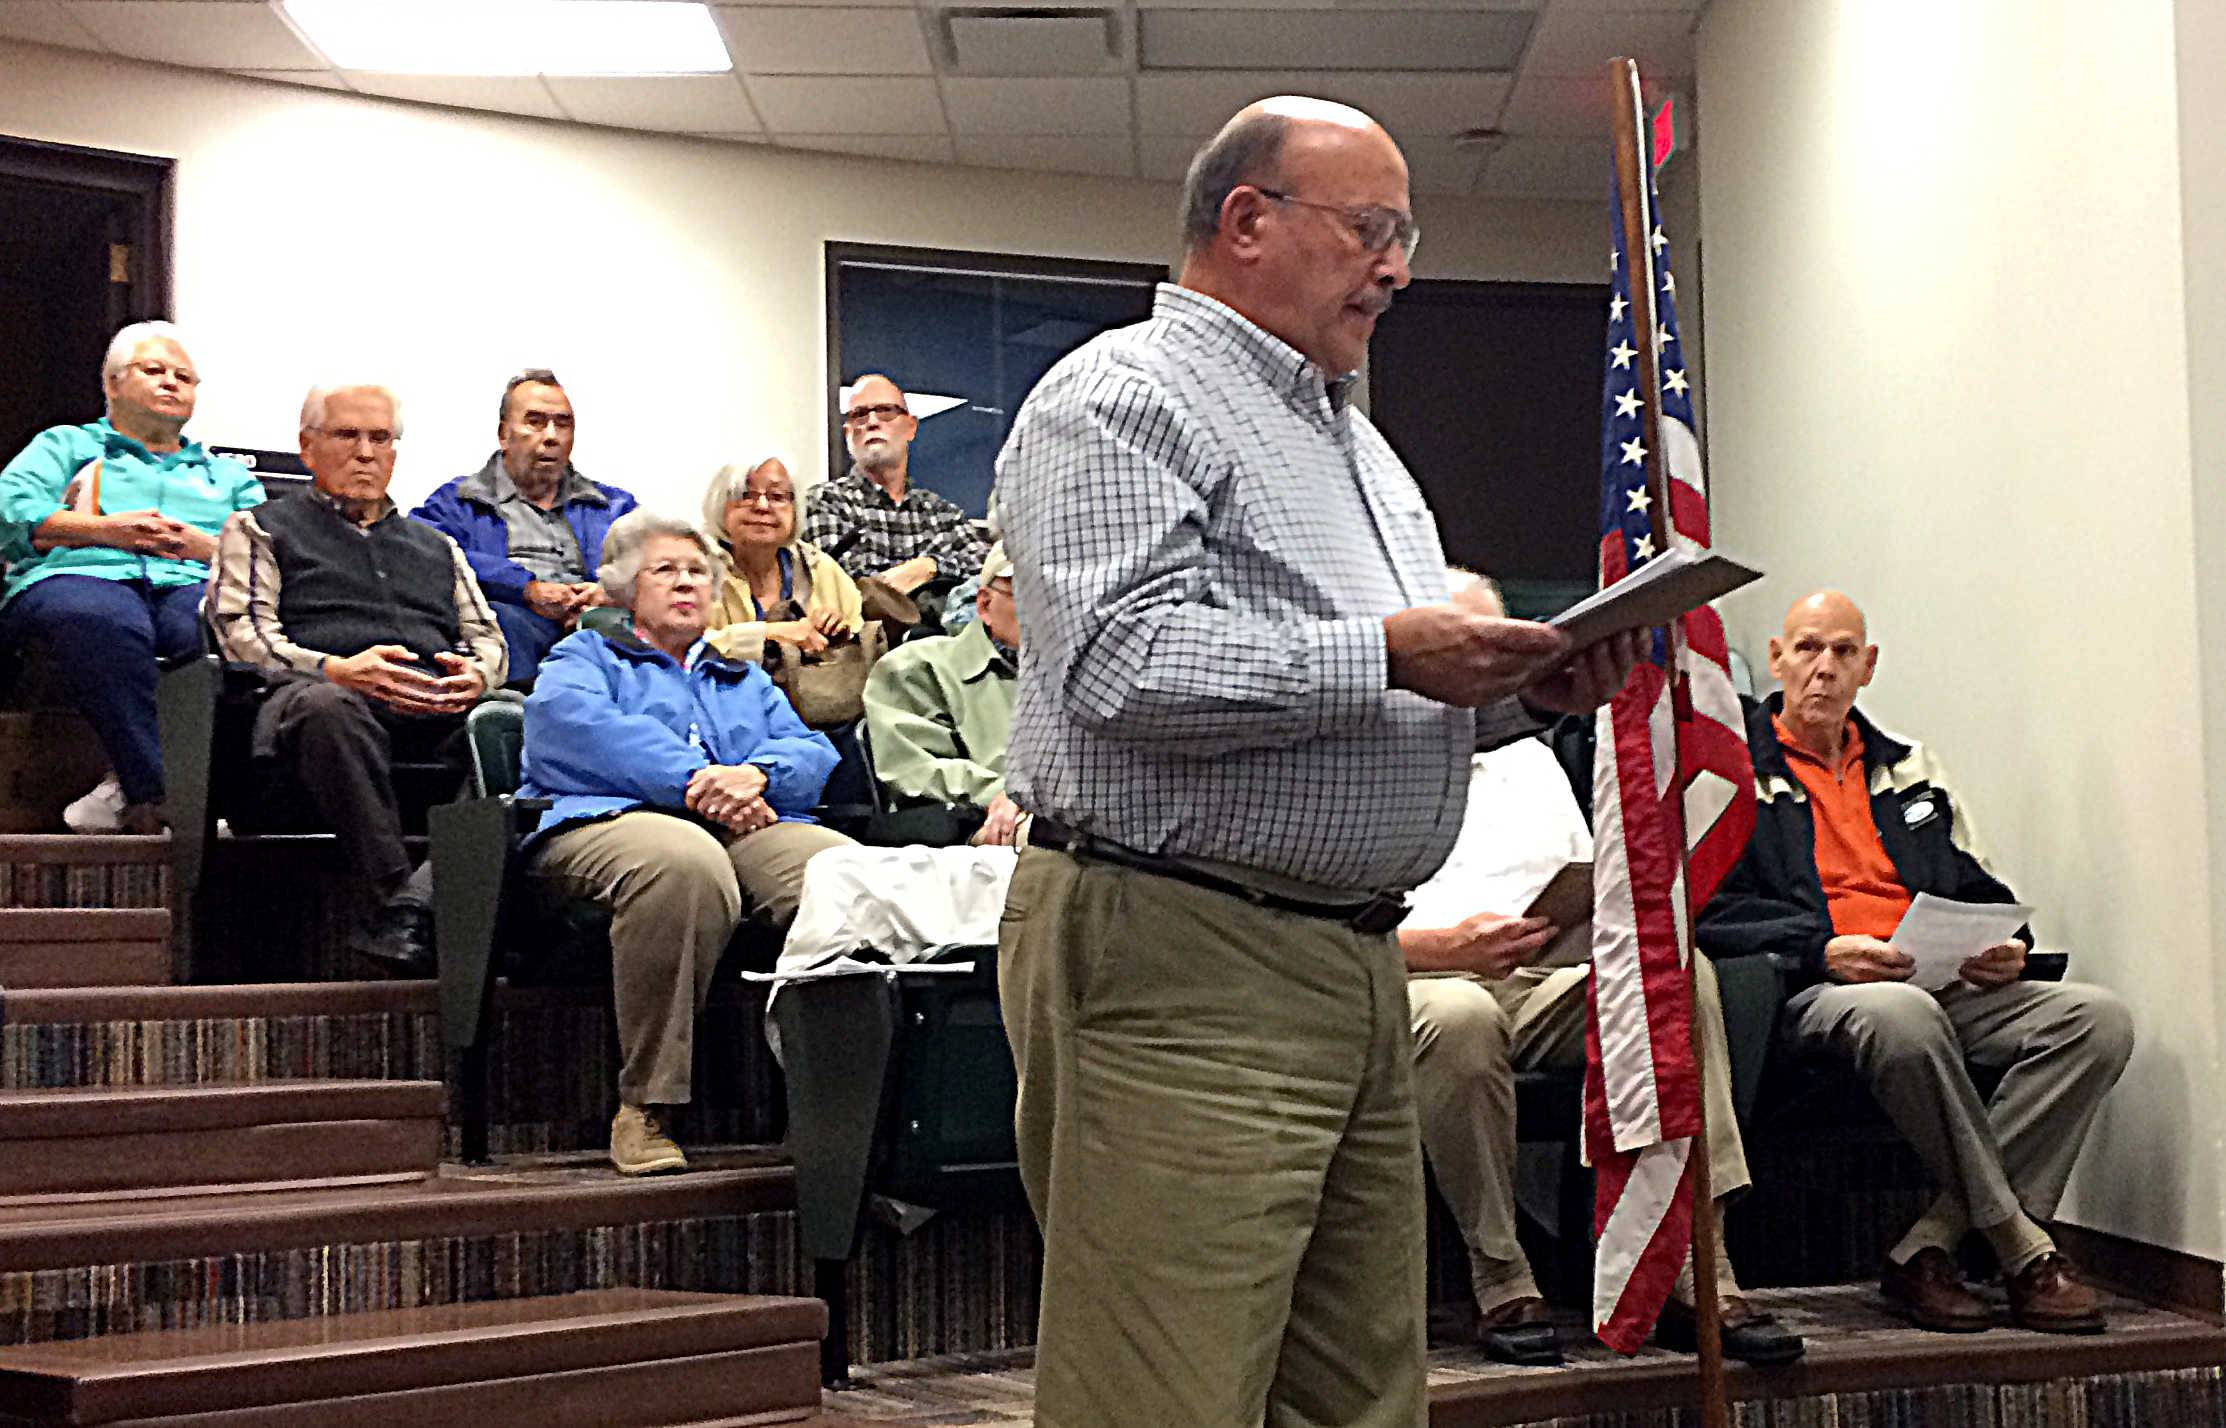 Grayslake residents concerned about rising school taxes